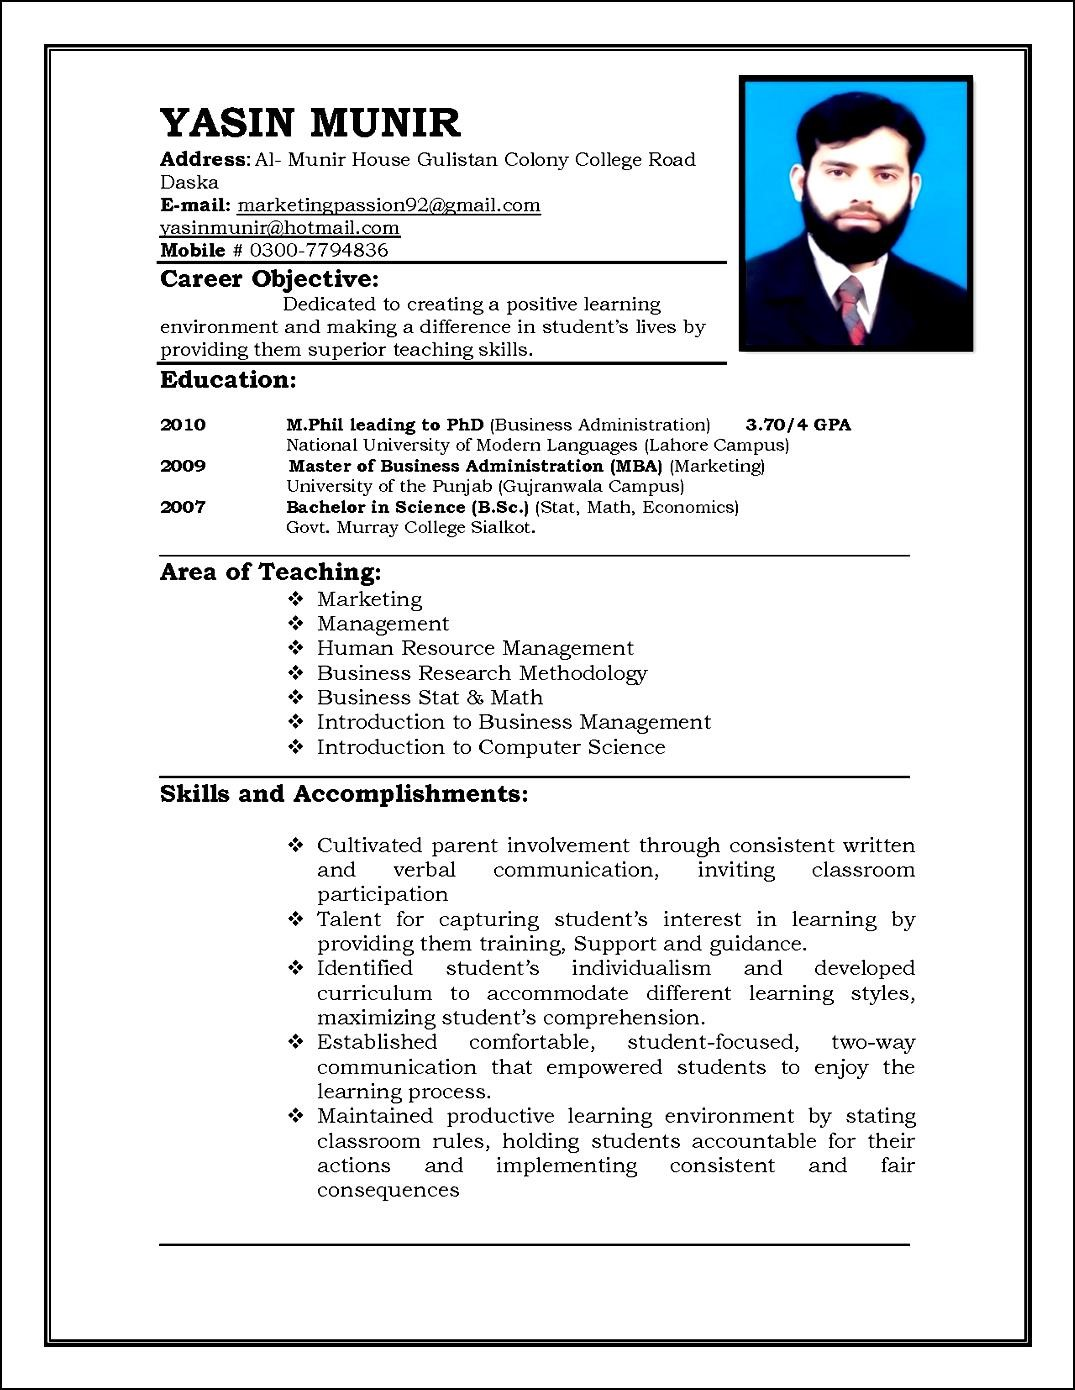 cv layout for teachers curriculum vitae cv layout for teachers how to write a teaching cv teacherstalk teachers forum curriculum vitae samples